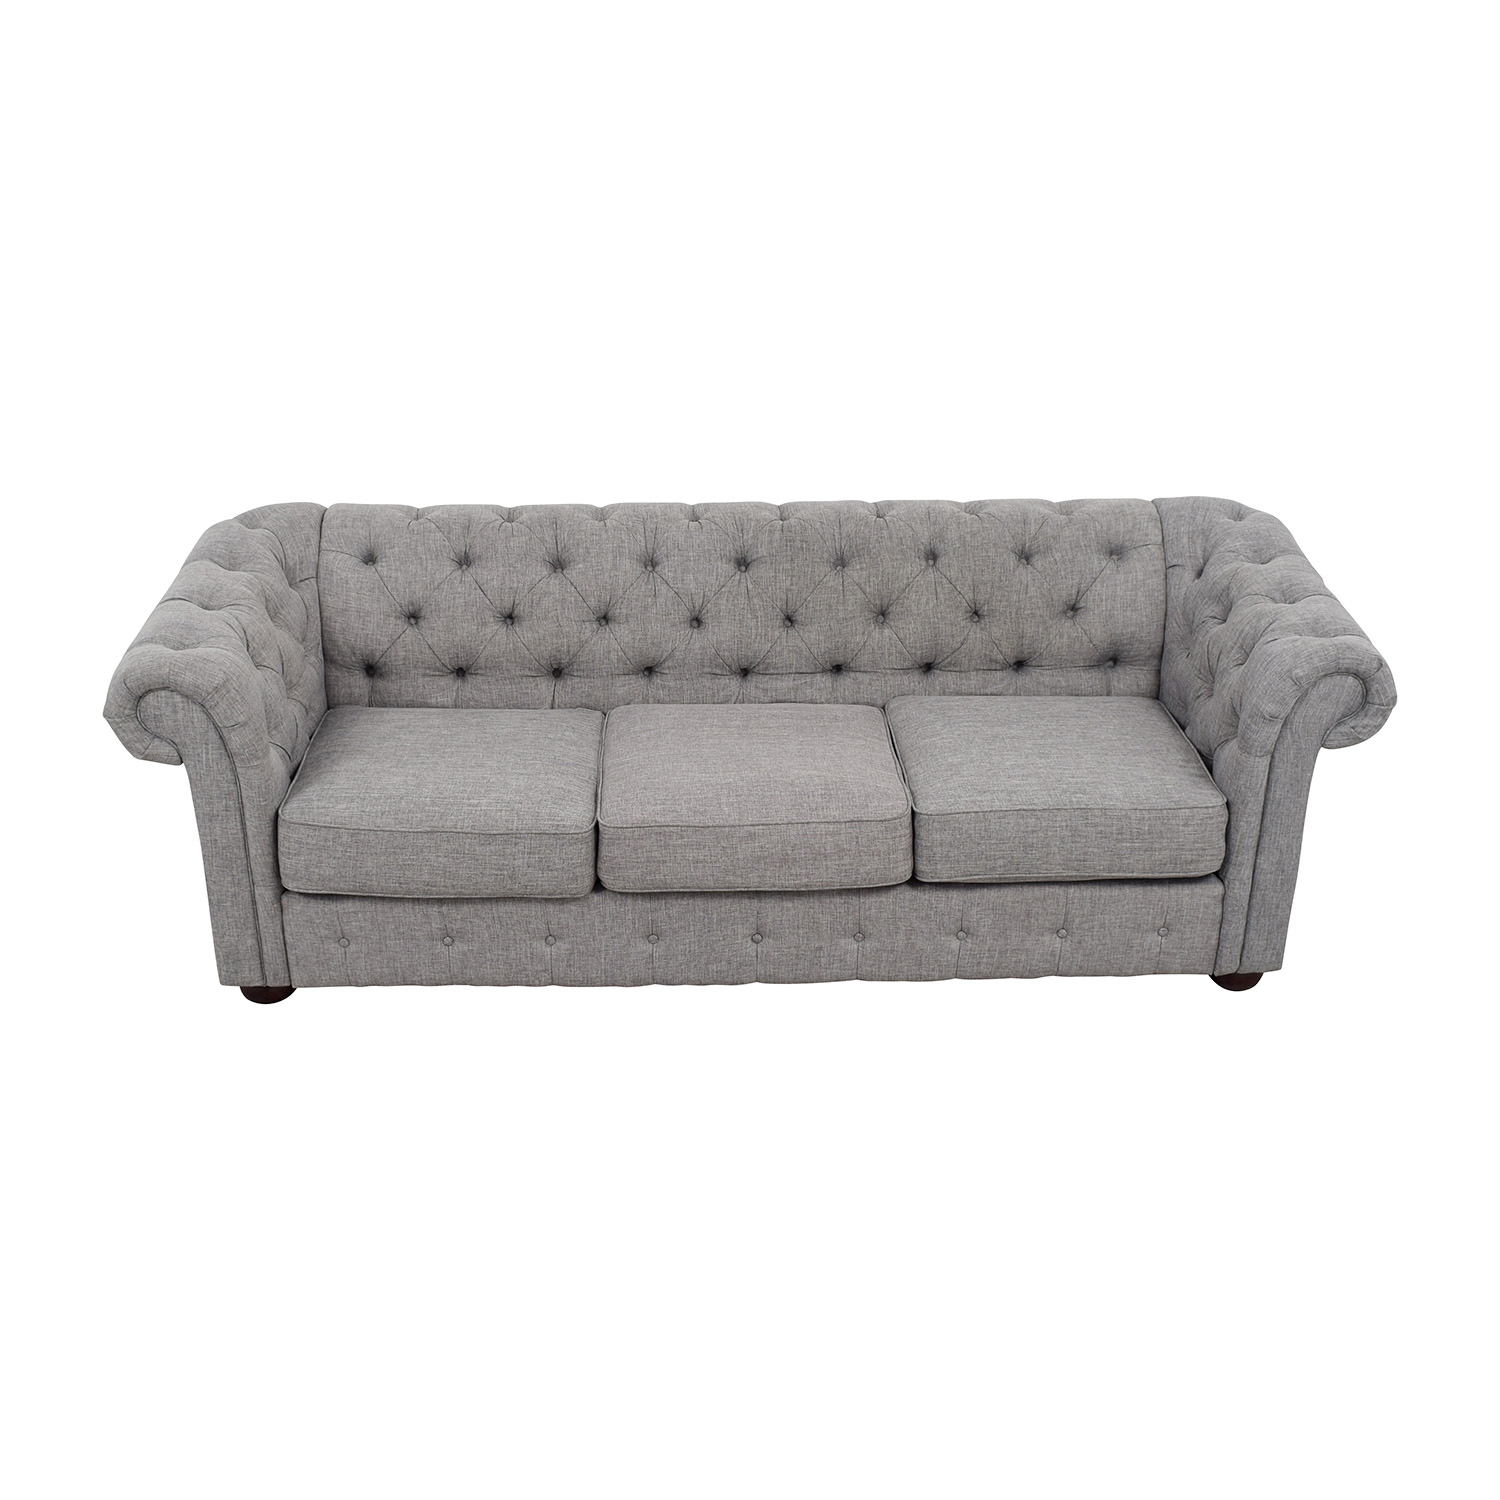 House of Hampton Augustine Tufted Chesterfield Sofa sale